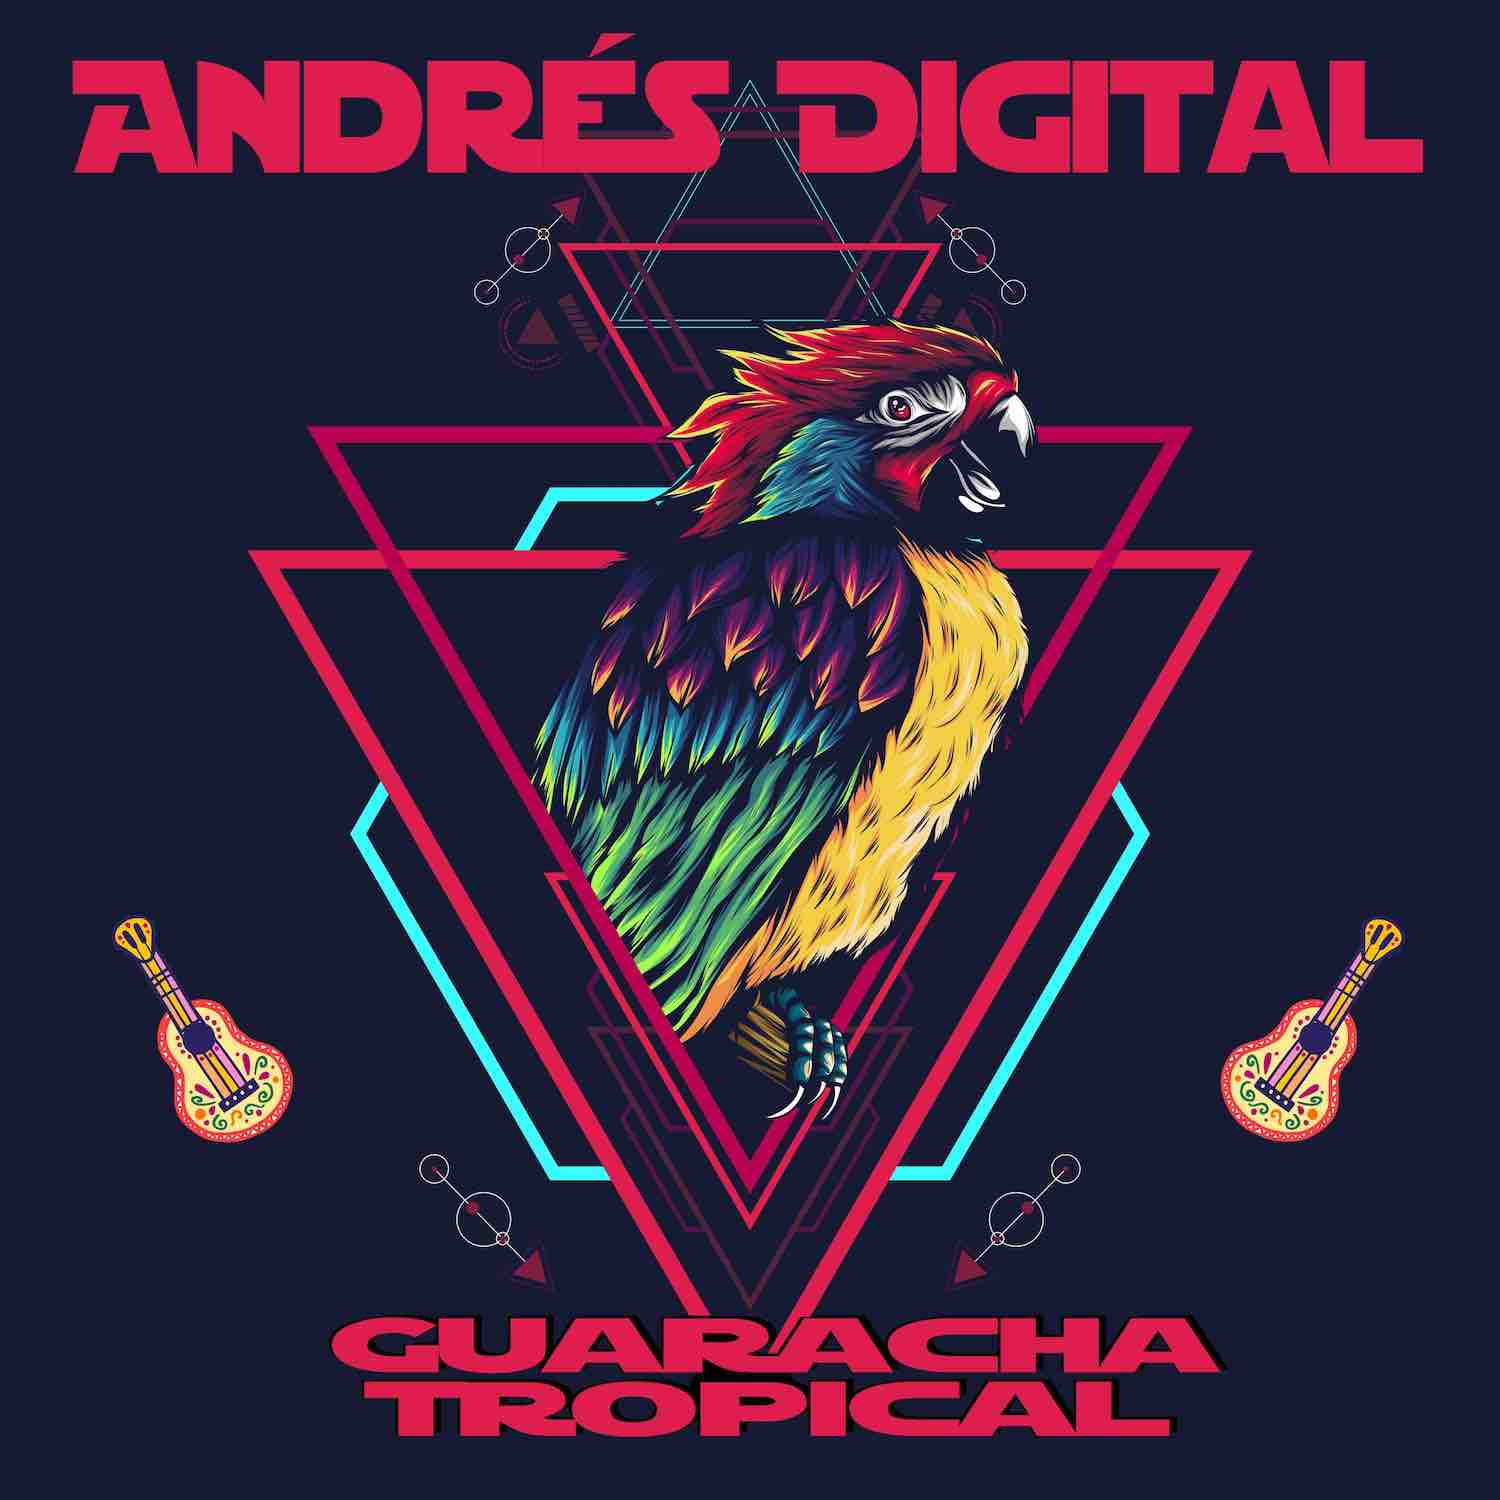 Brandnew 10 Track Album Guaracha Tropical by Andrés Digital ft. Paco Mendoza, Deela, Fanfare Ciocarlia and Caballo.